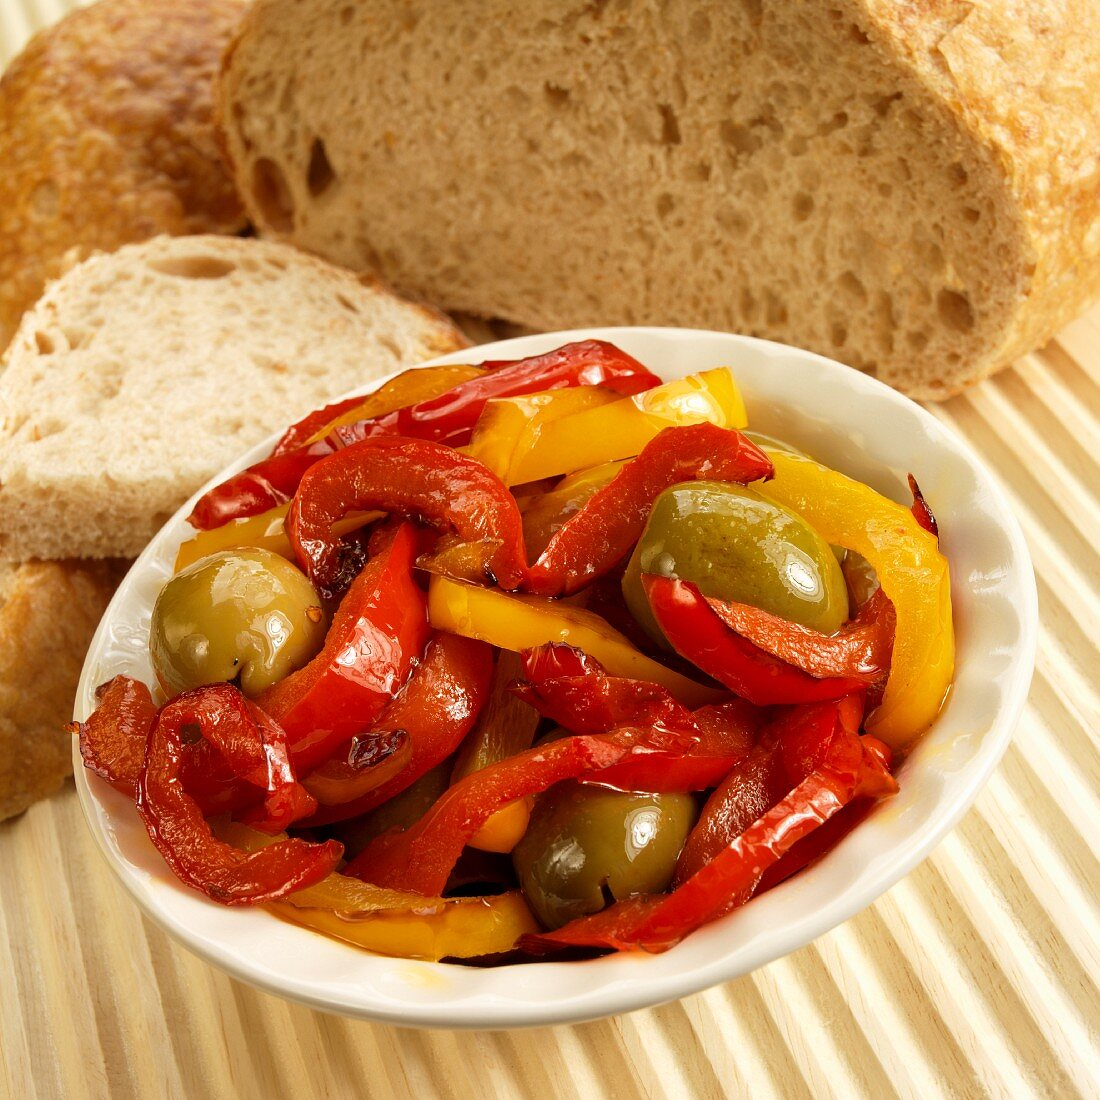 Peperonata (red and yellow peppers, green olives, garlic) with bread